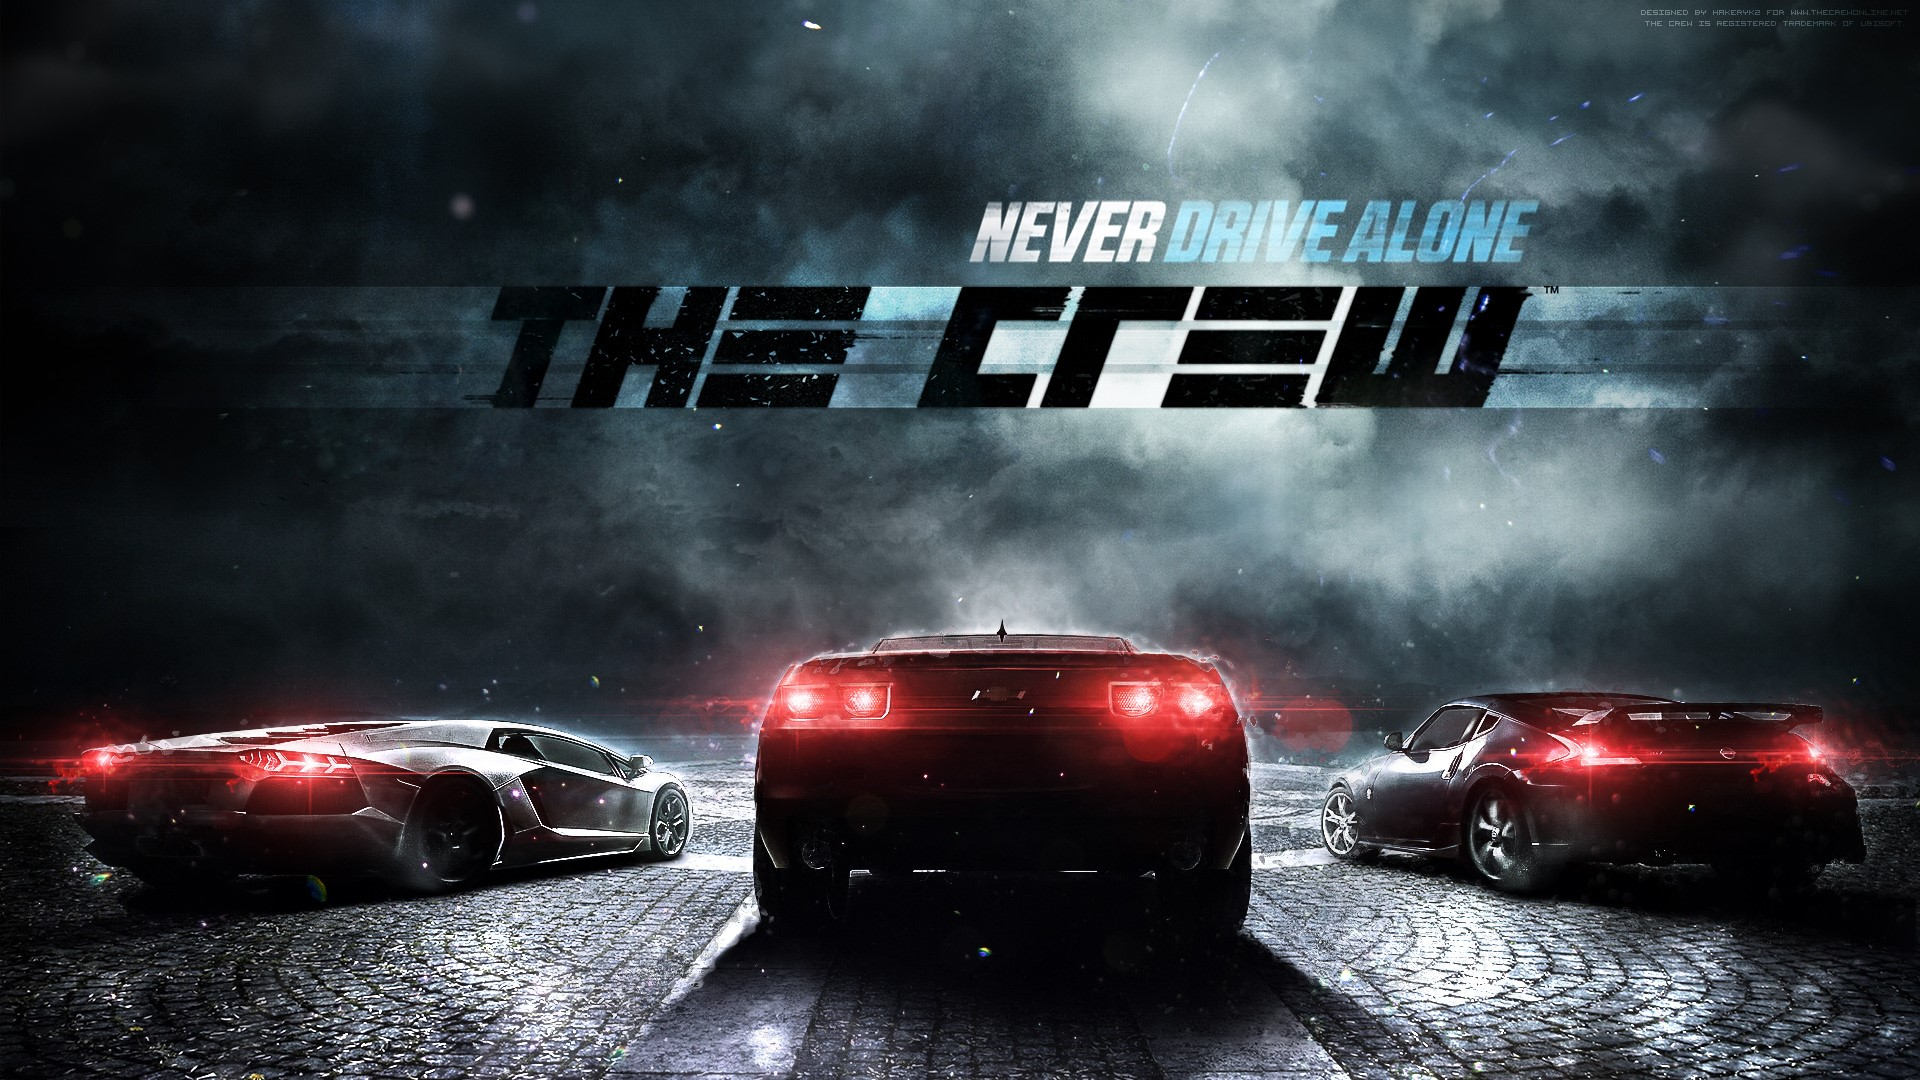 18932_the-crew-cars-wallpaper-1920.jpg (1920×1080)